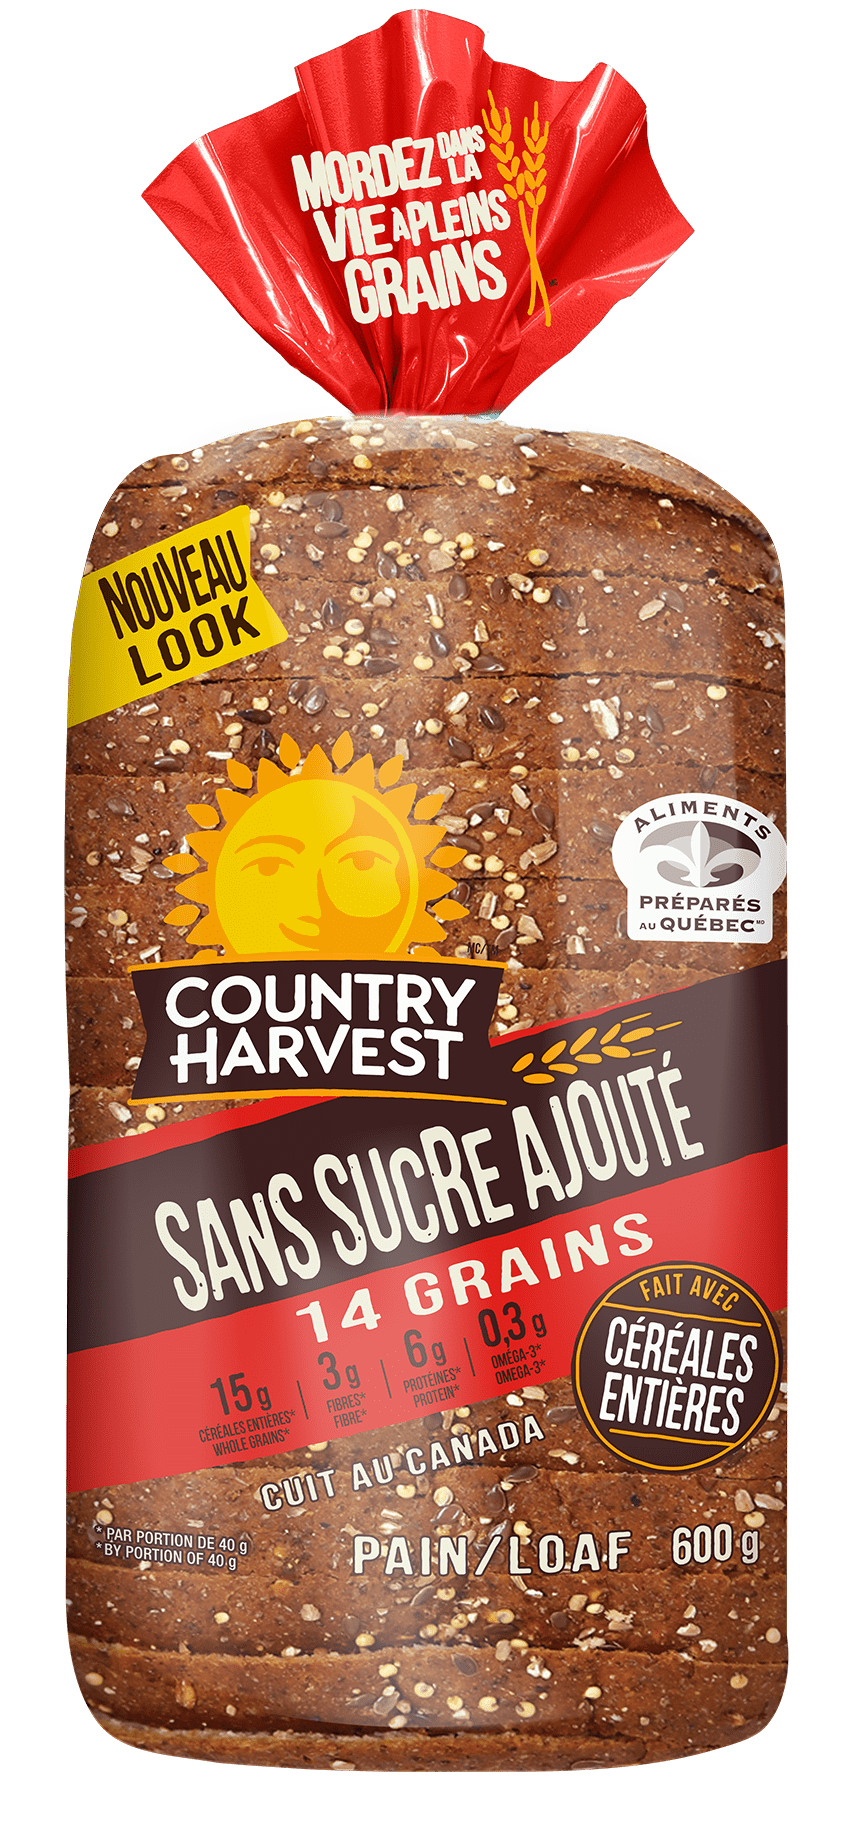 Country Harvest No Sugar Added 14 Grains